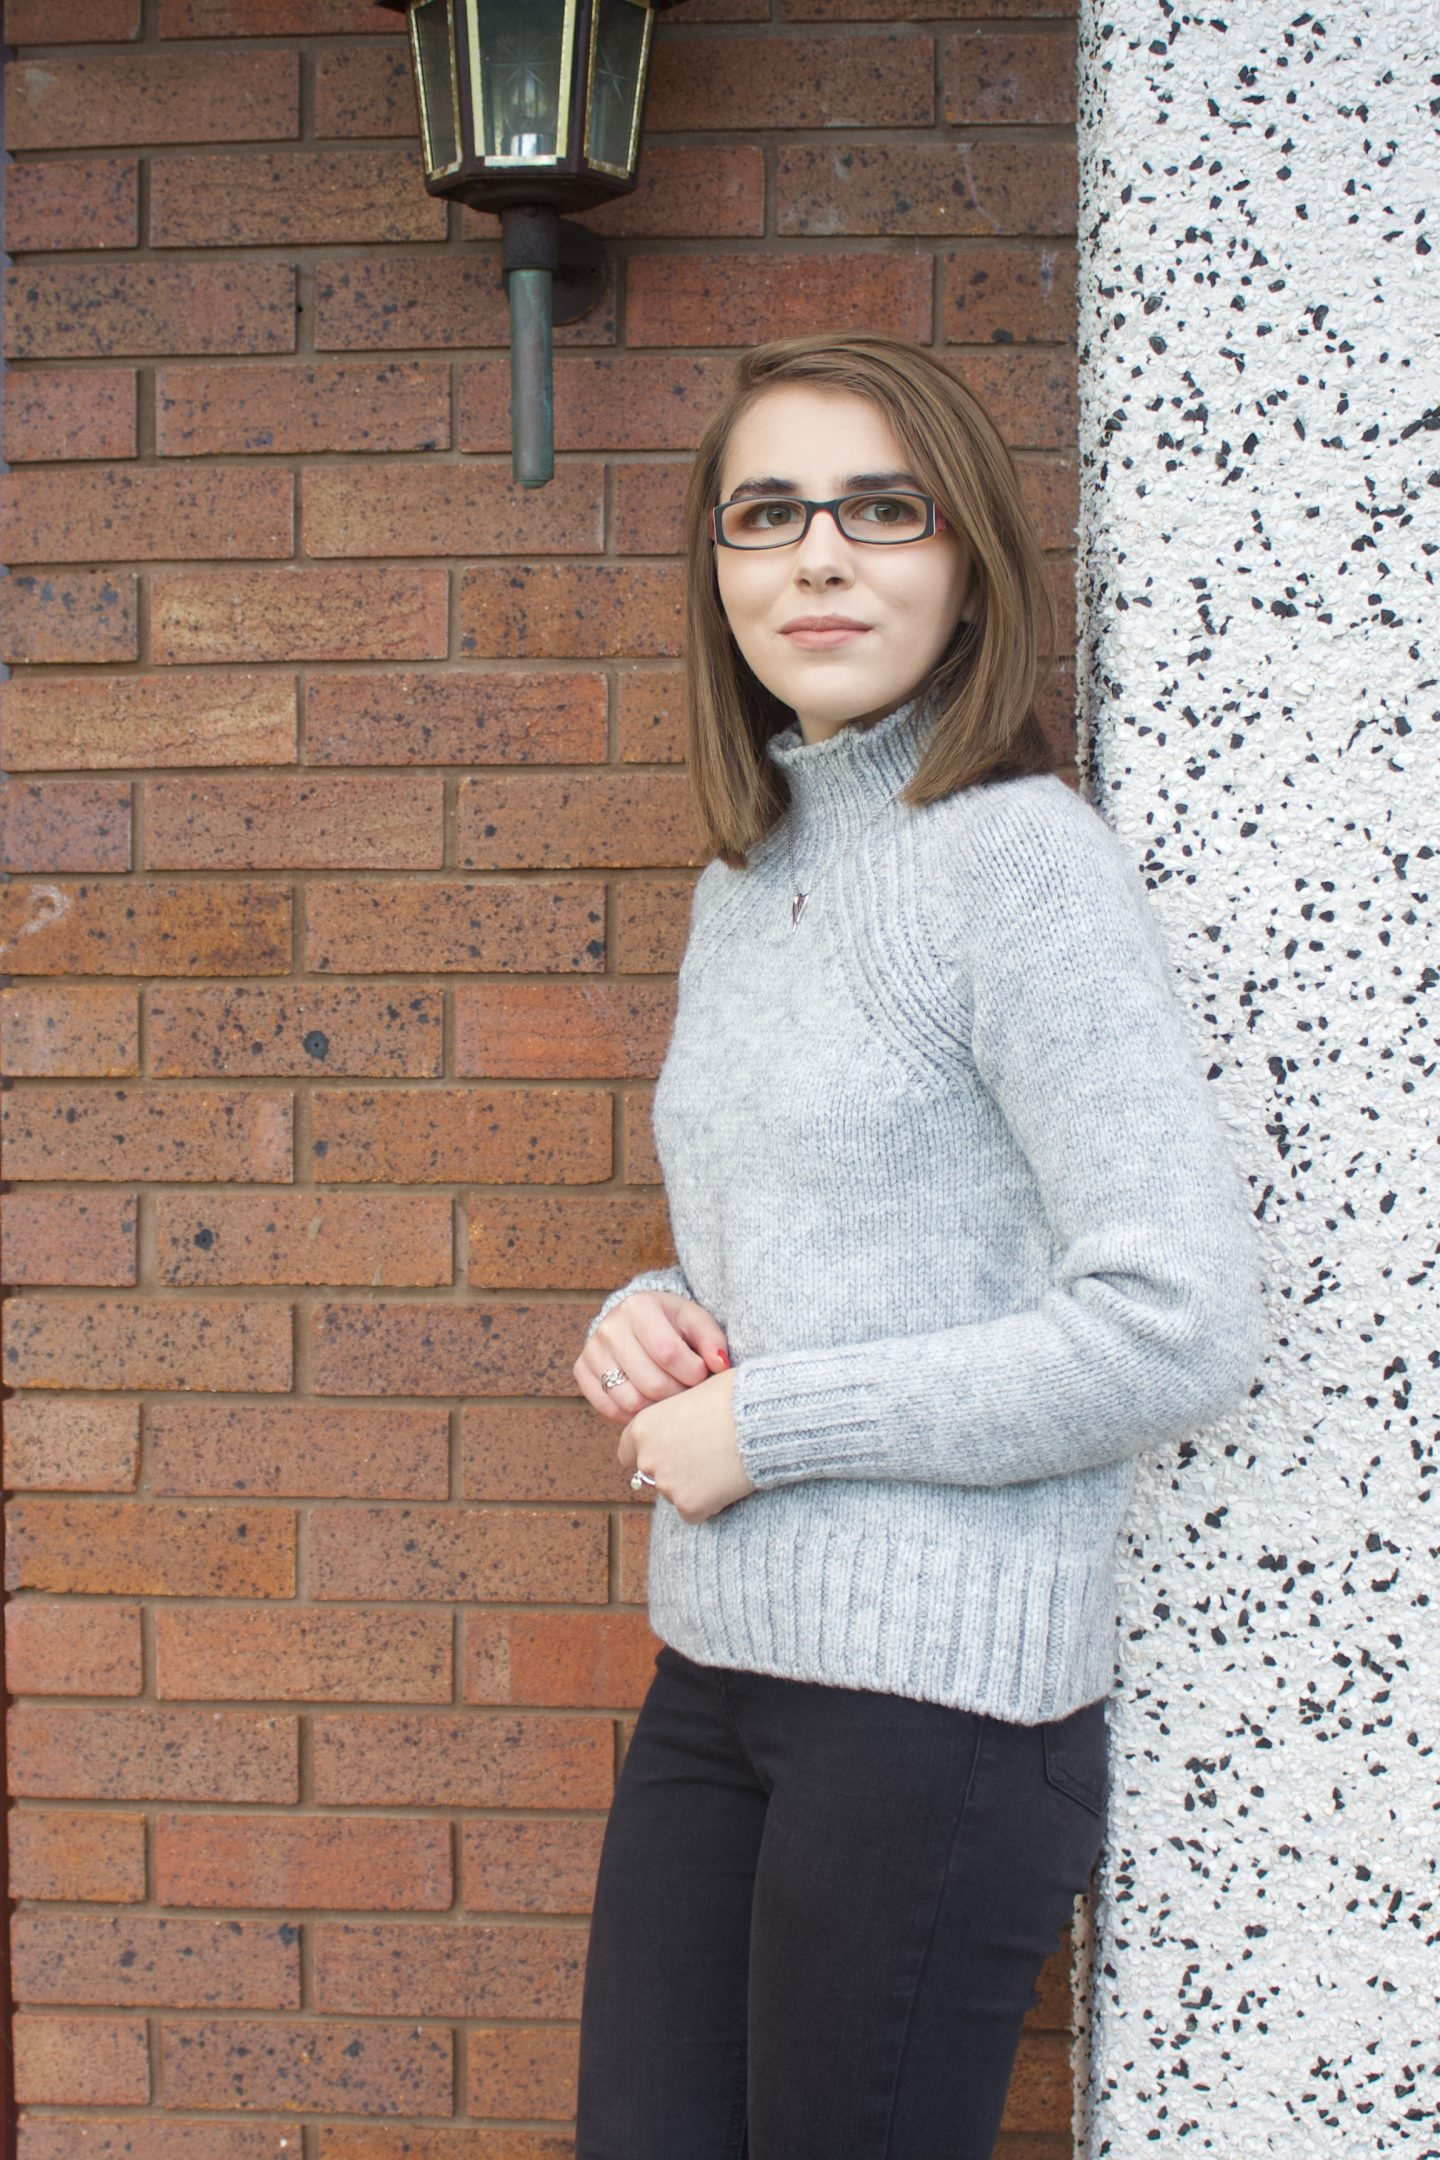 A photo of Elin from the side, she is leaning against a wall